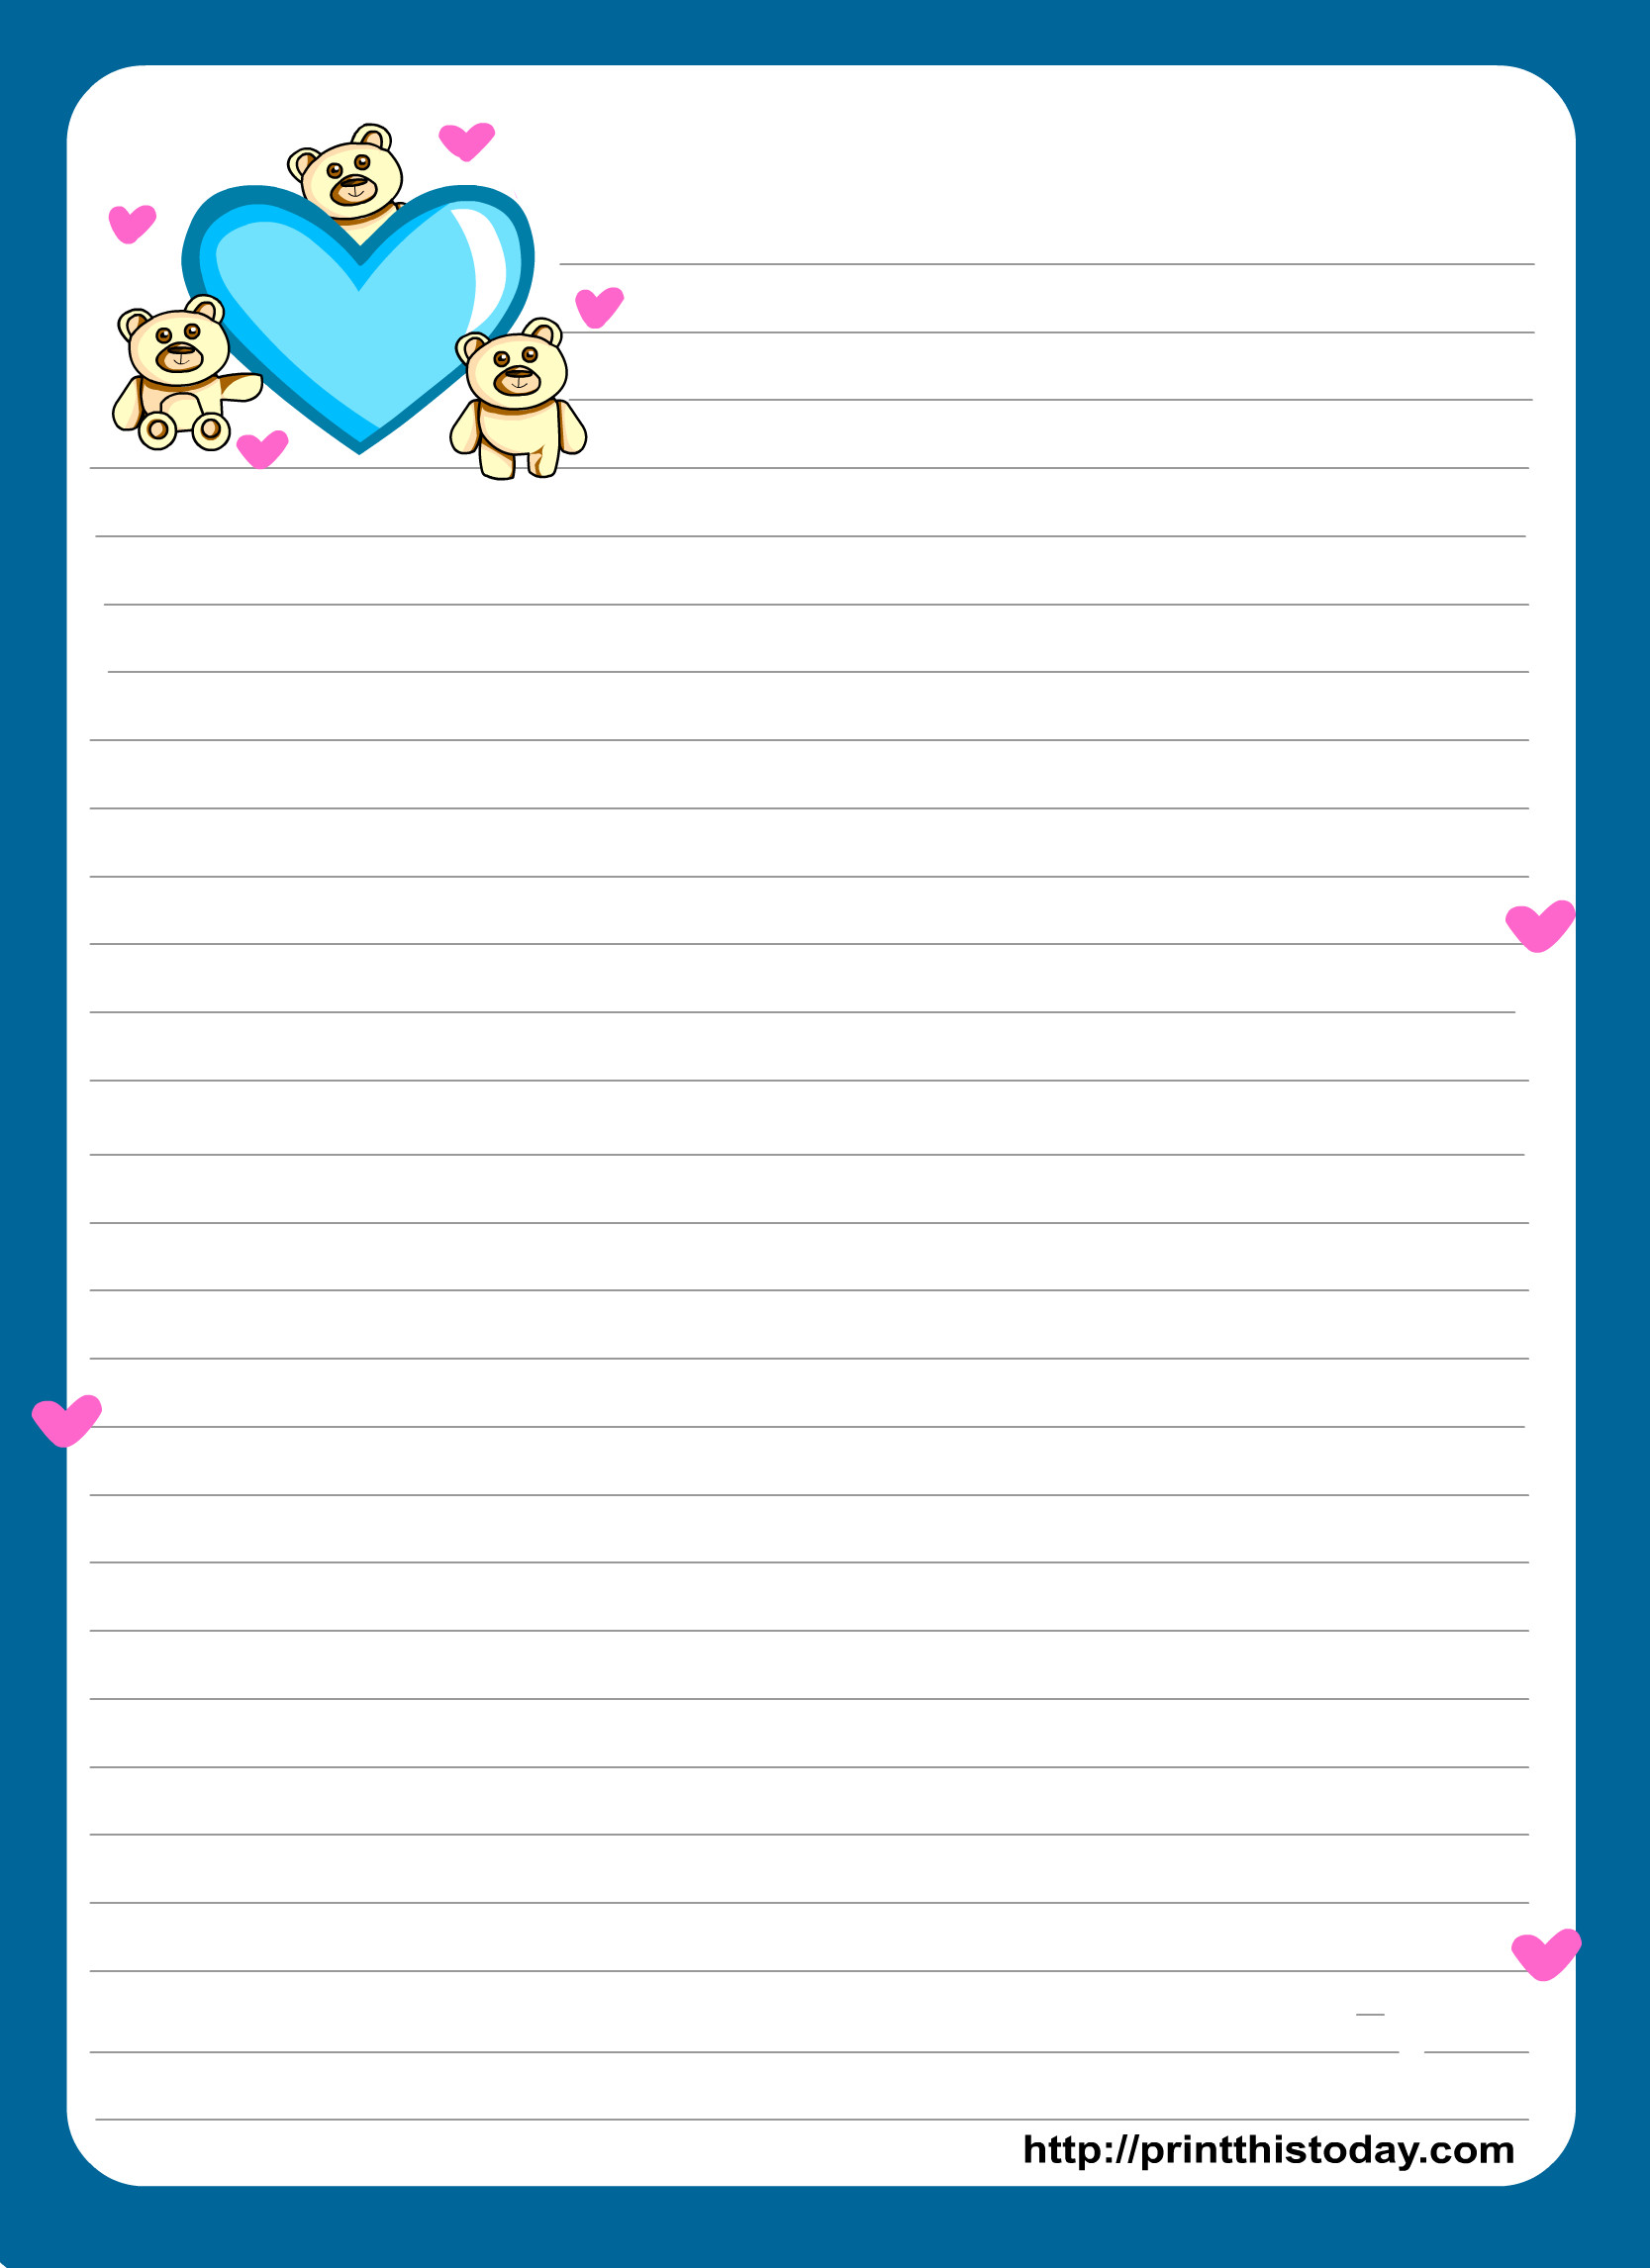 Free Stationery Paper Templates Miss You Love Letter Pad Stationery